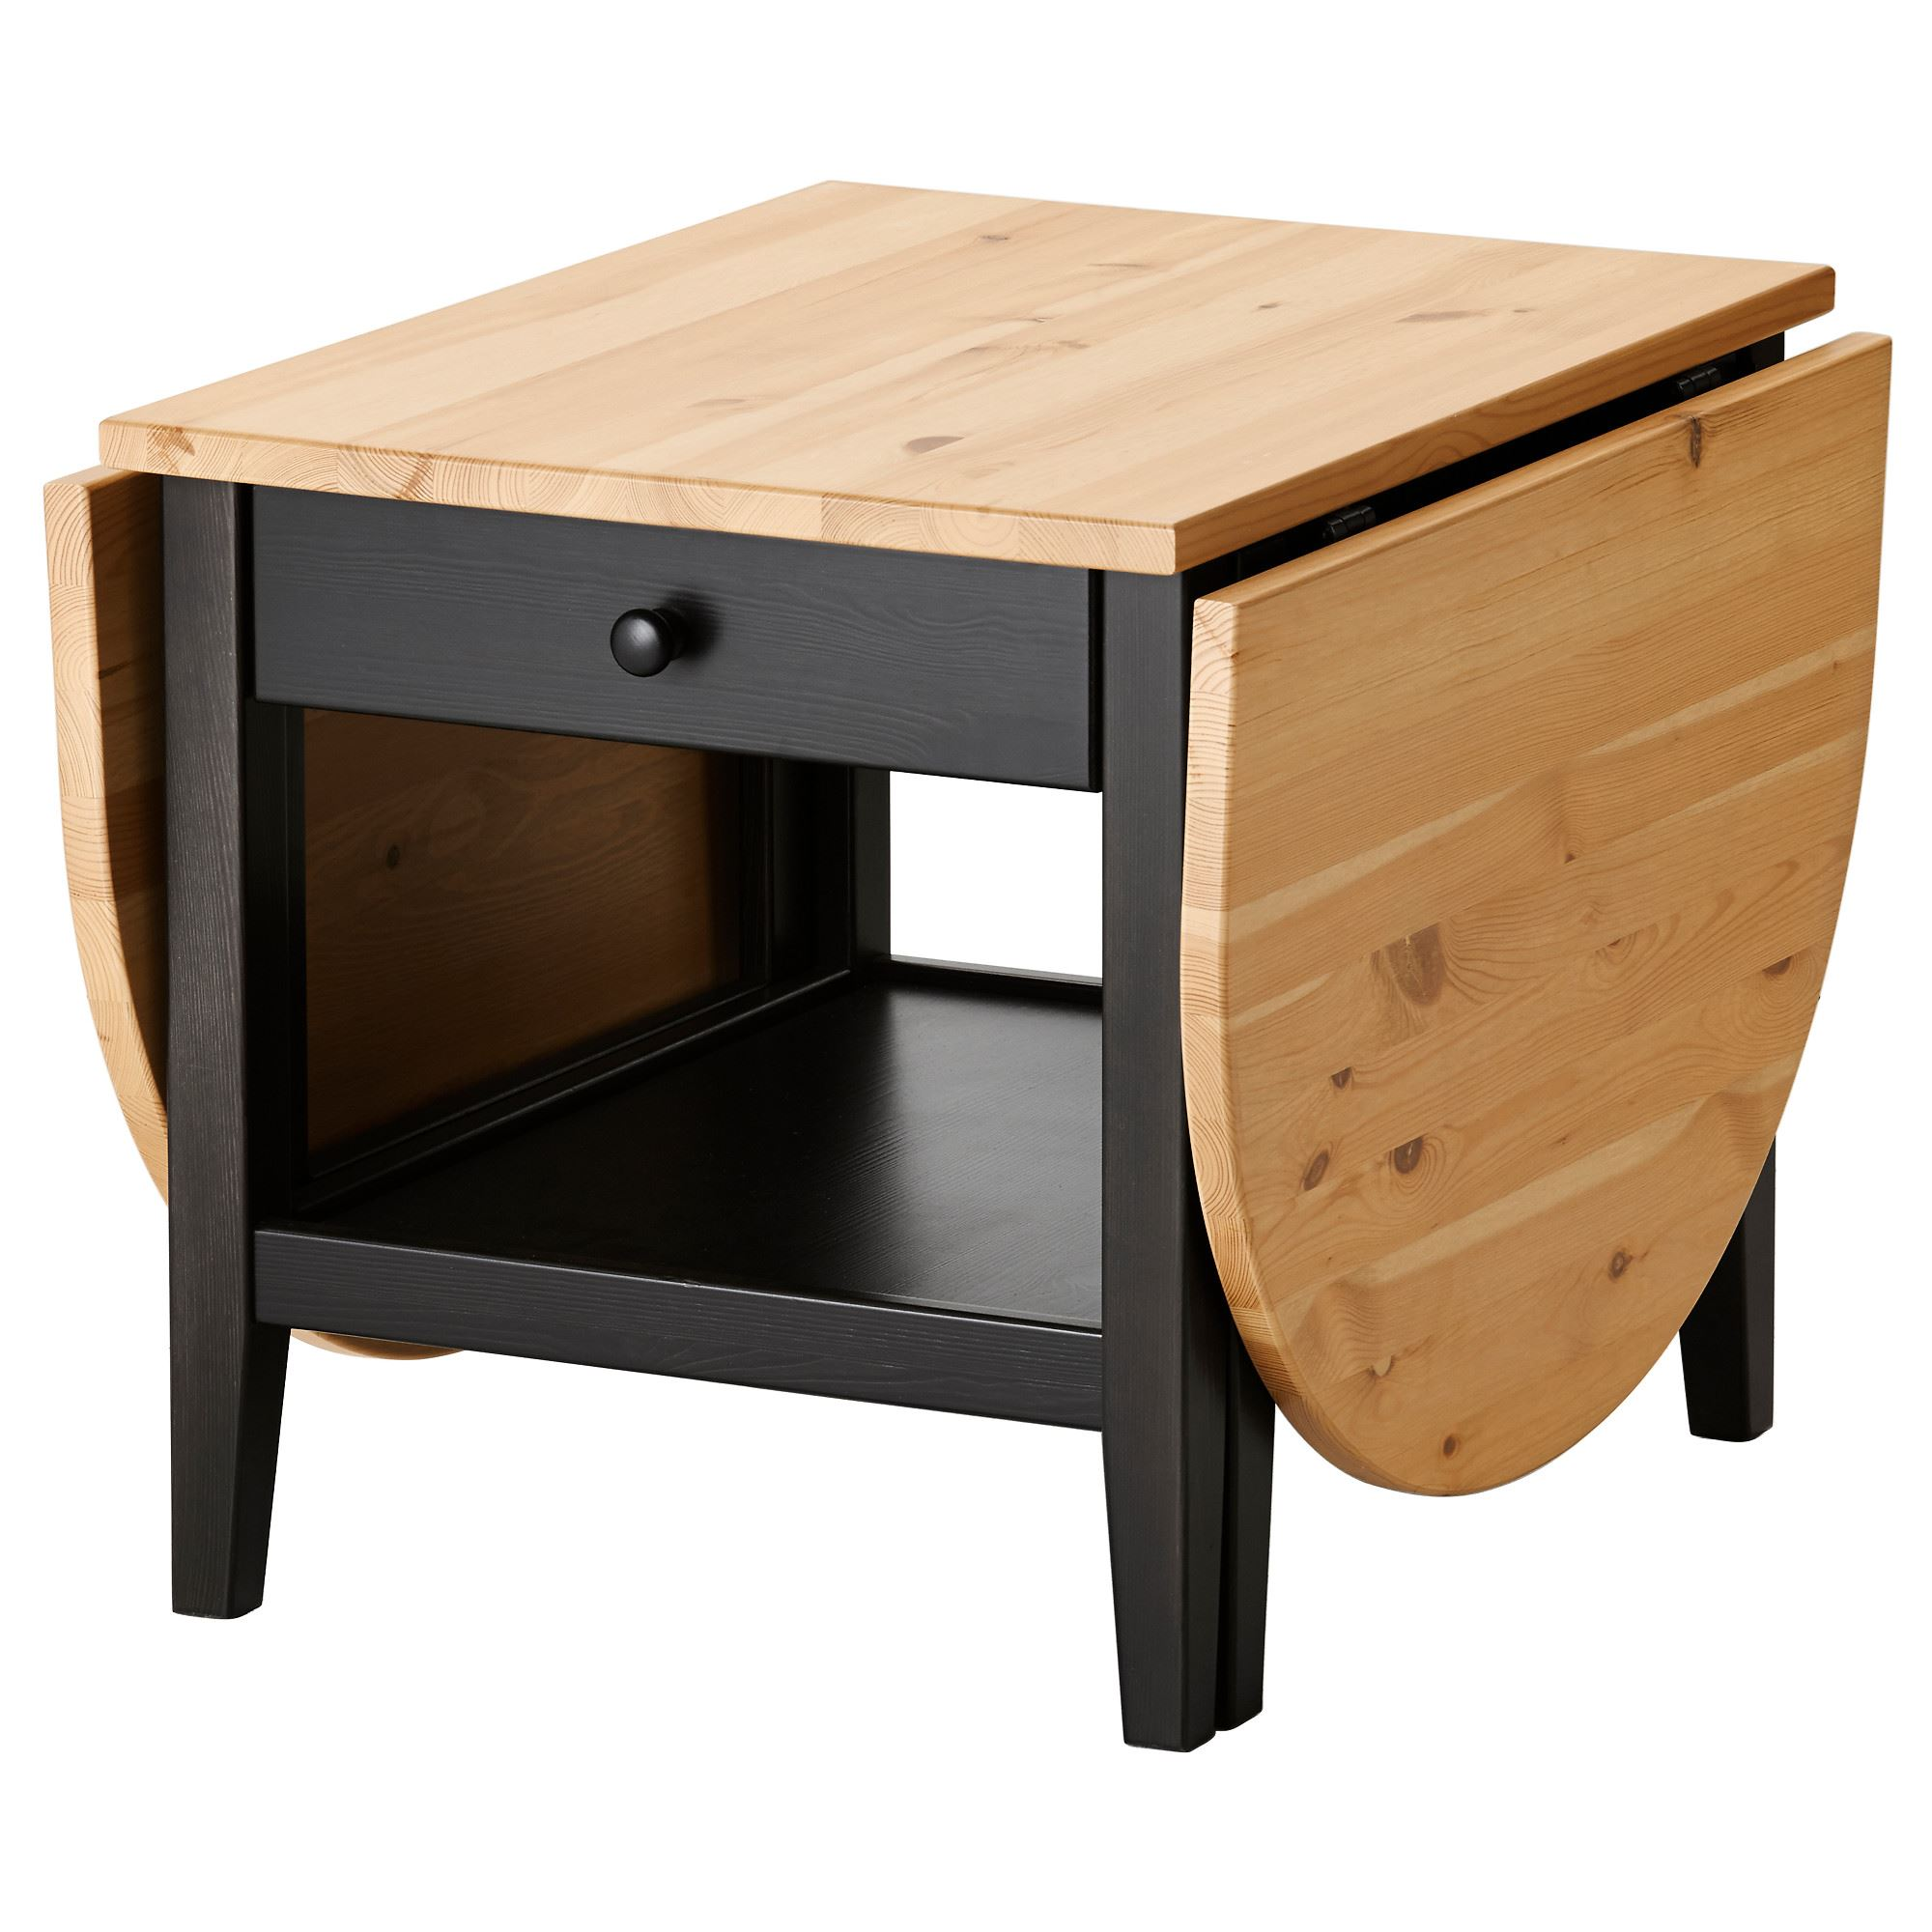 Table basses ikea table jardin bois ikea ikea pplar table for Table pliante walmart